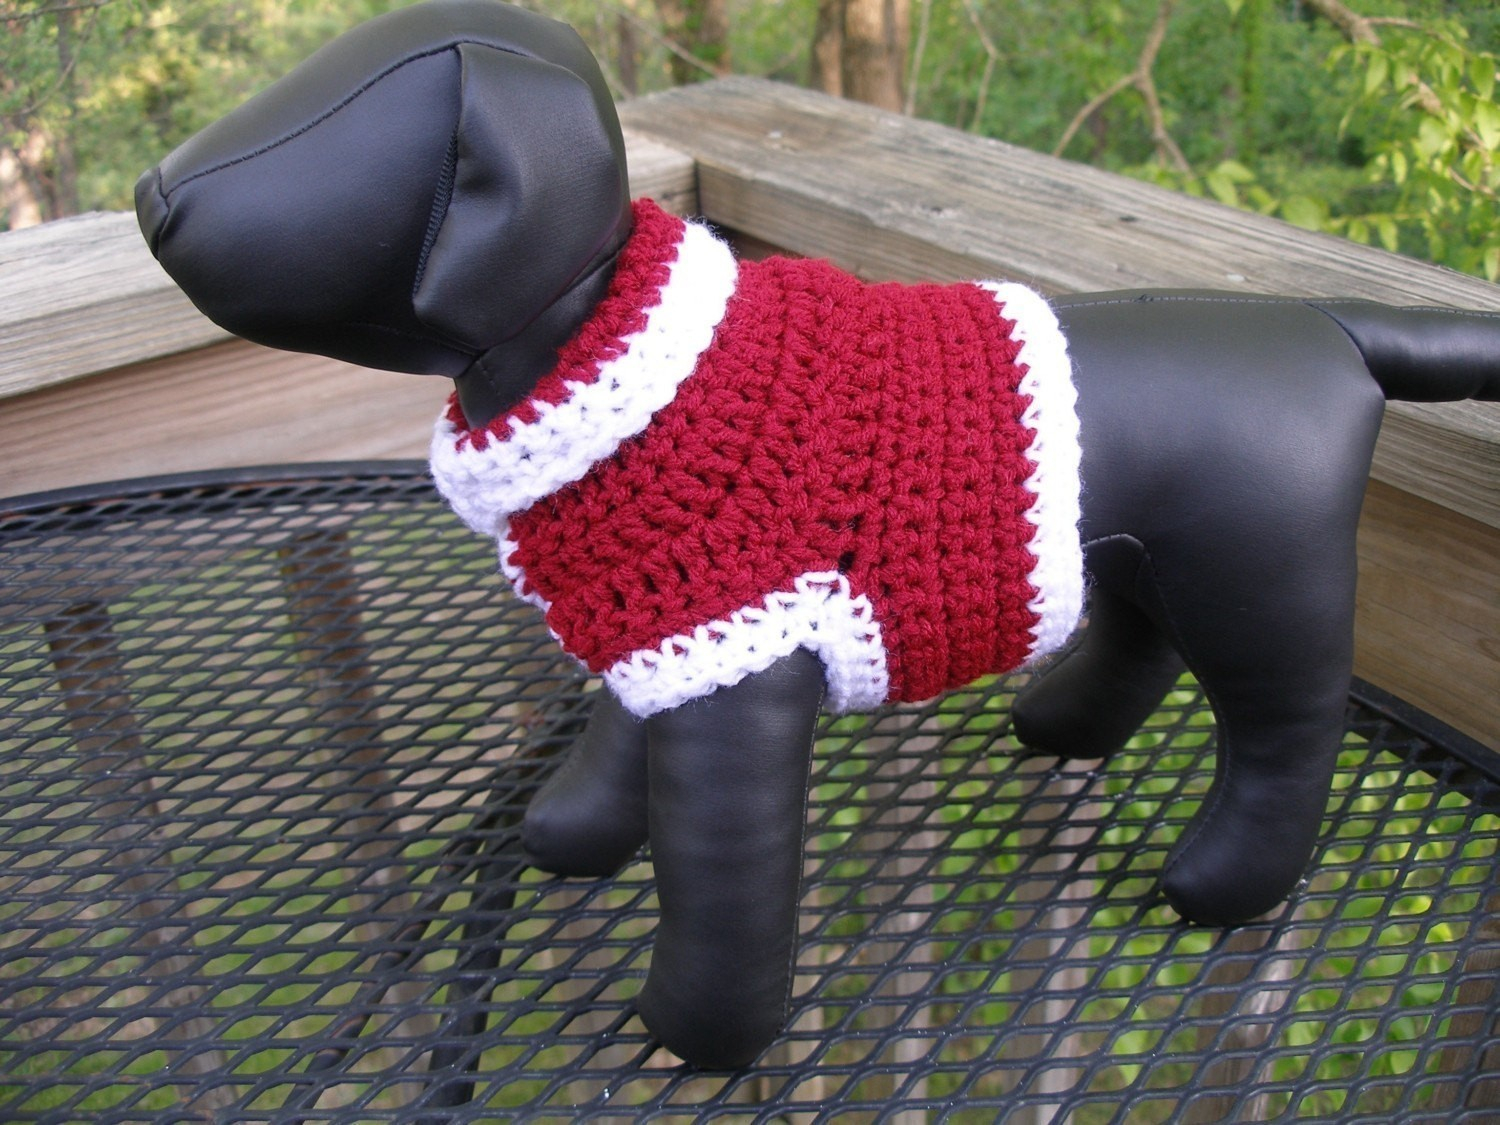 Small Dog Coat Knitting Pattern Free New Free Crochet Patterns For Inch Dolls American Girl Doll Clothes